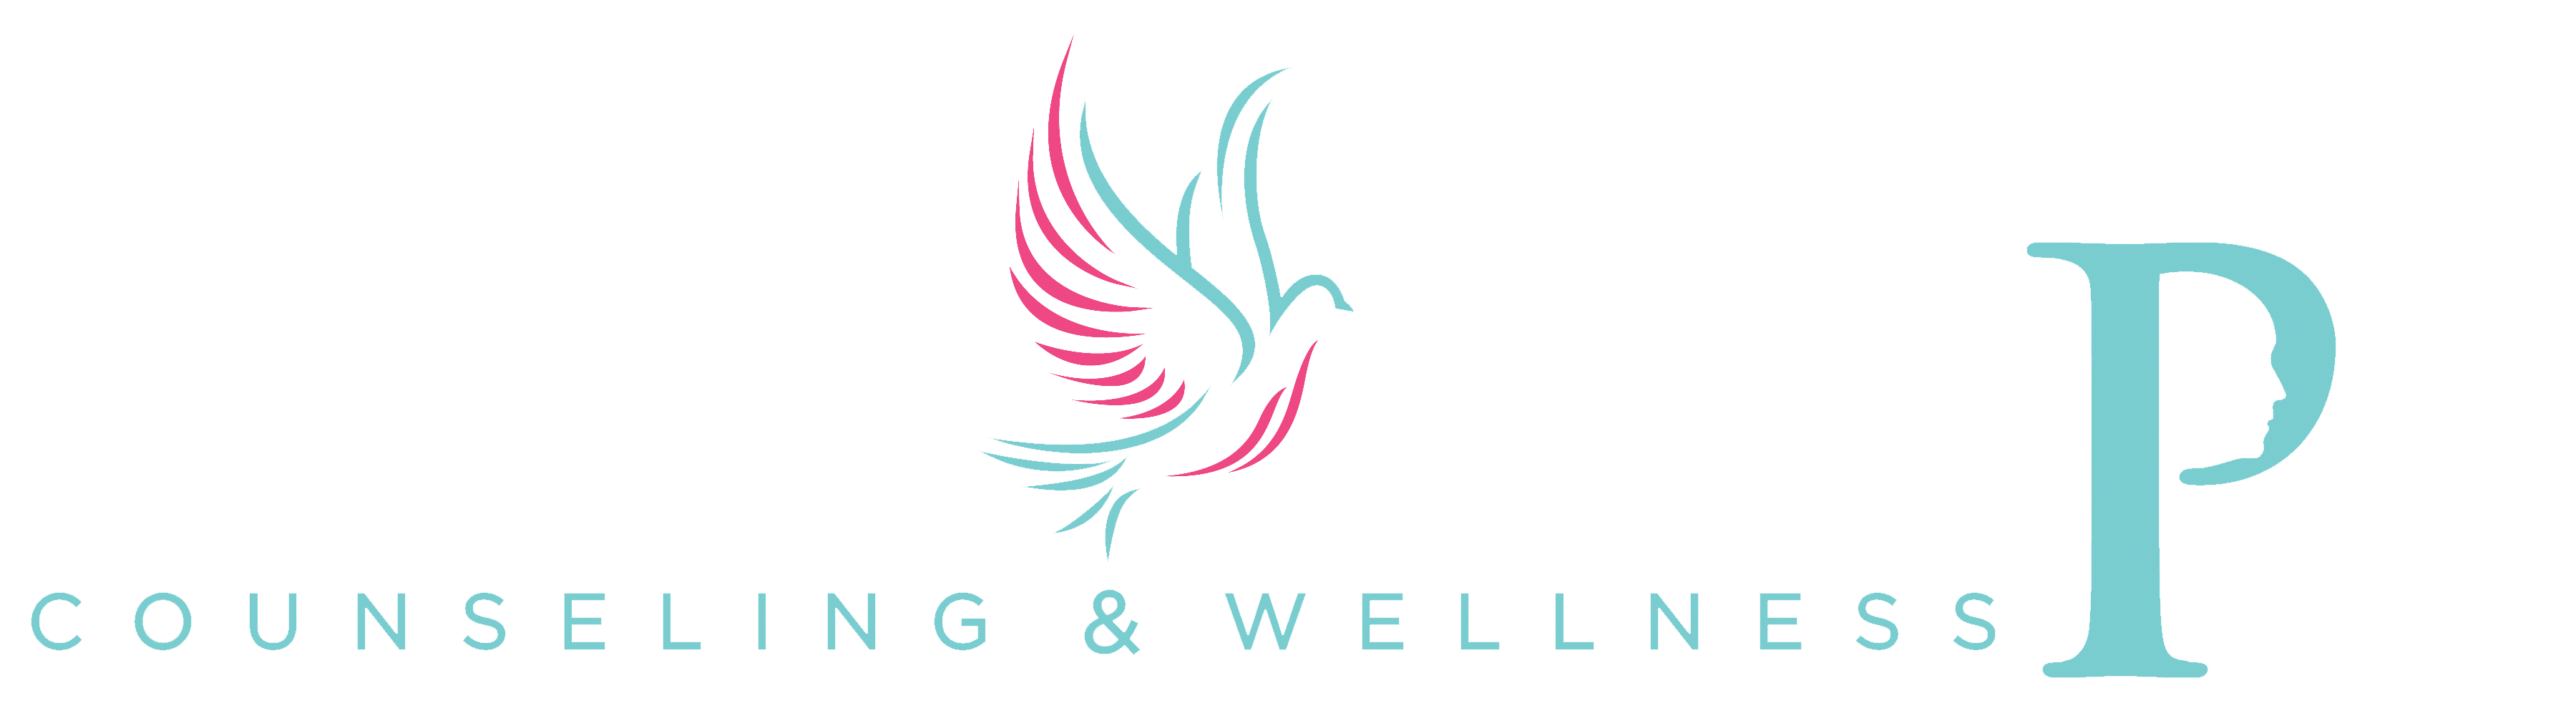 New Hope Counseling & Wellness